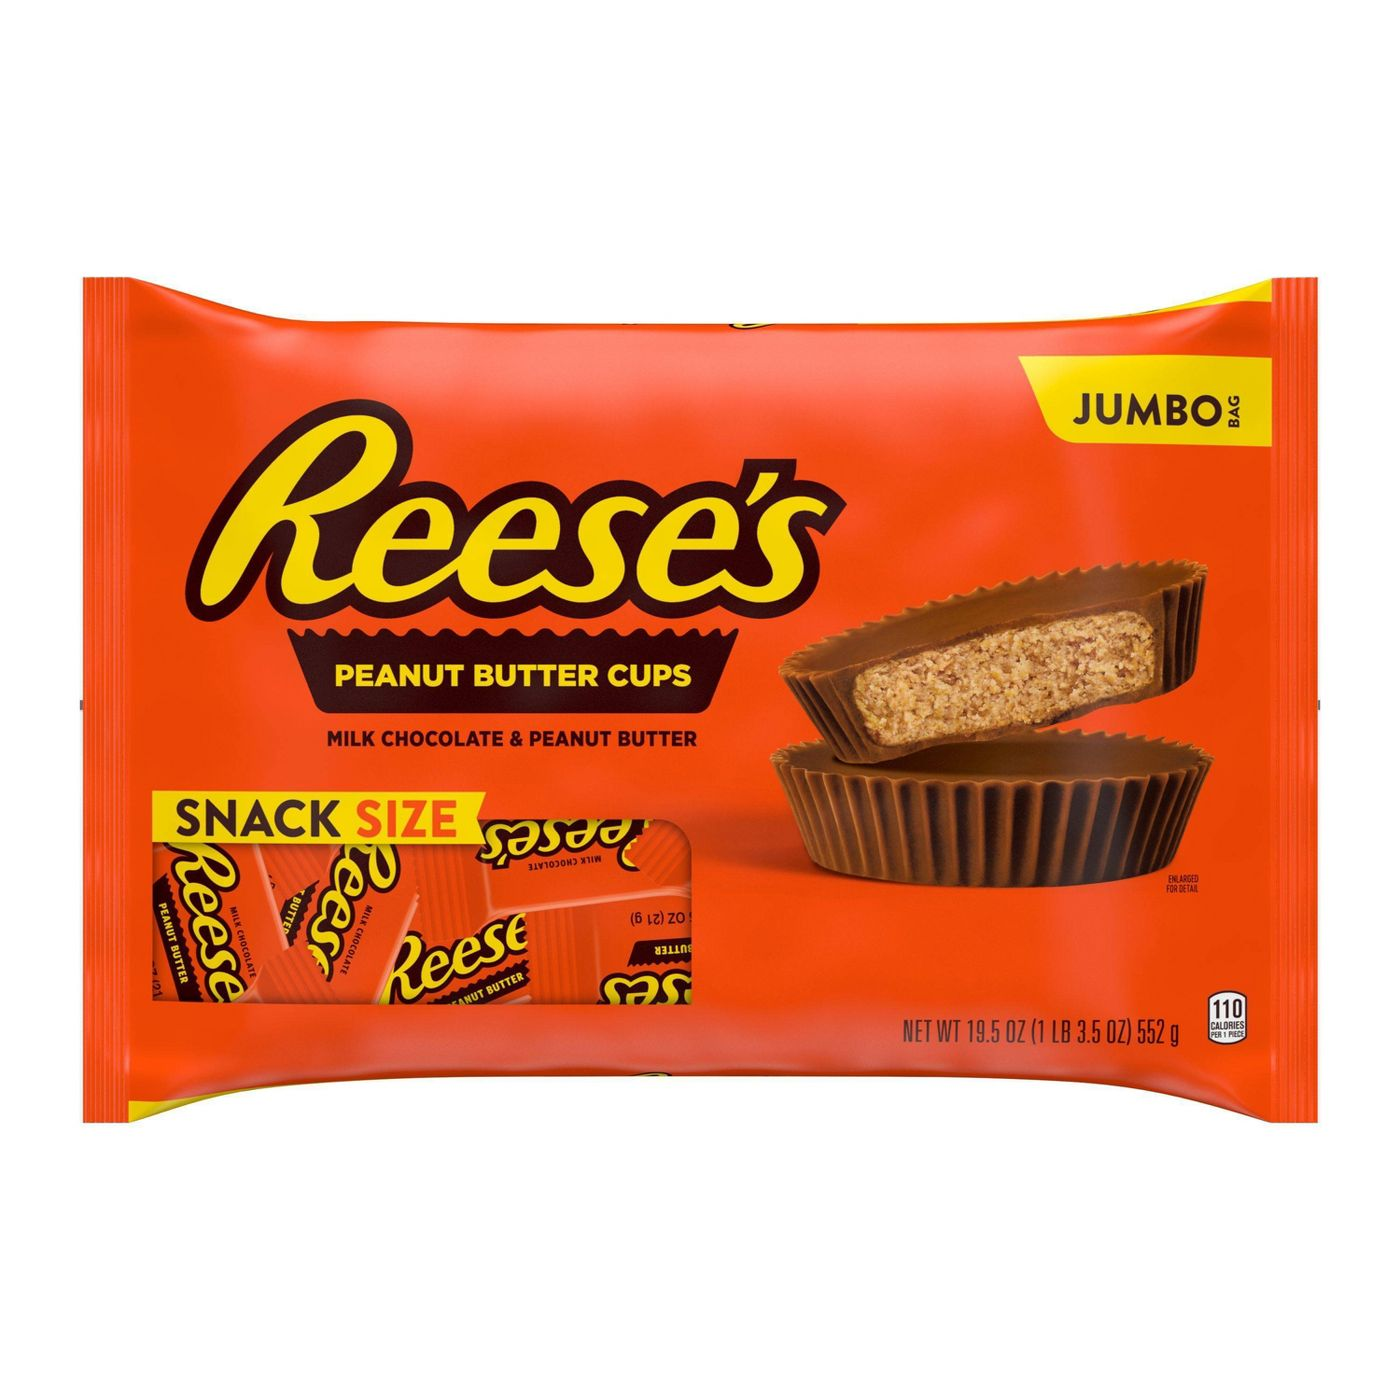 snack size reese's peanut butter cups in bag